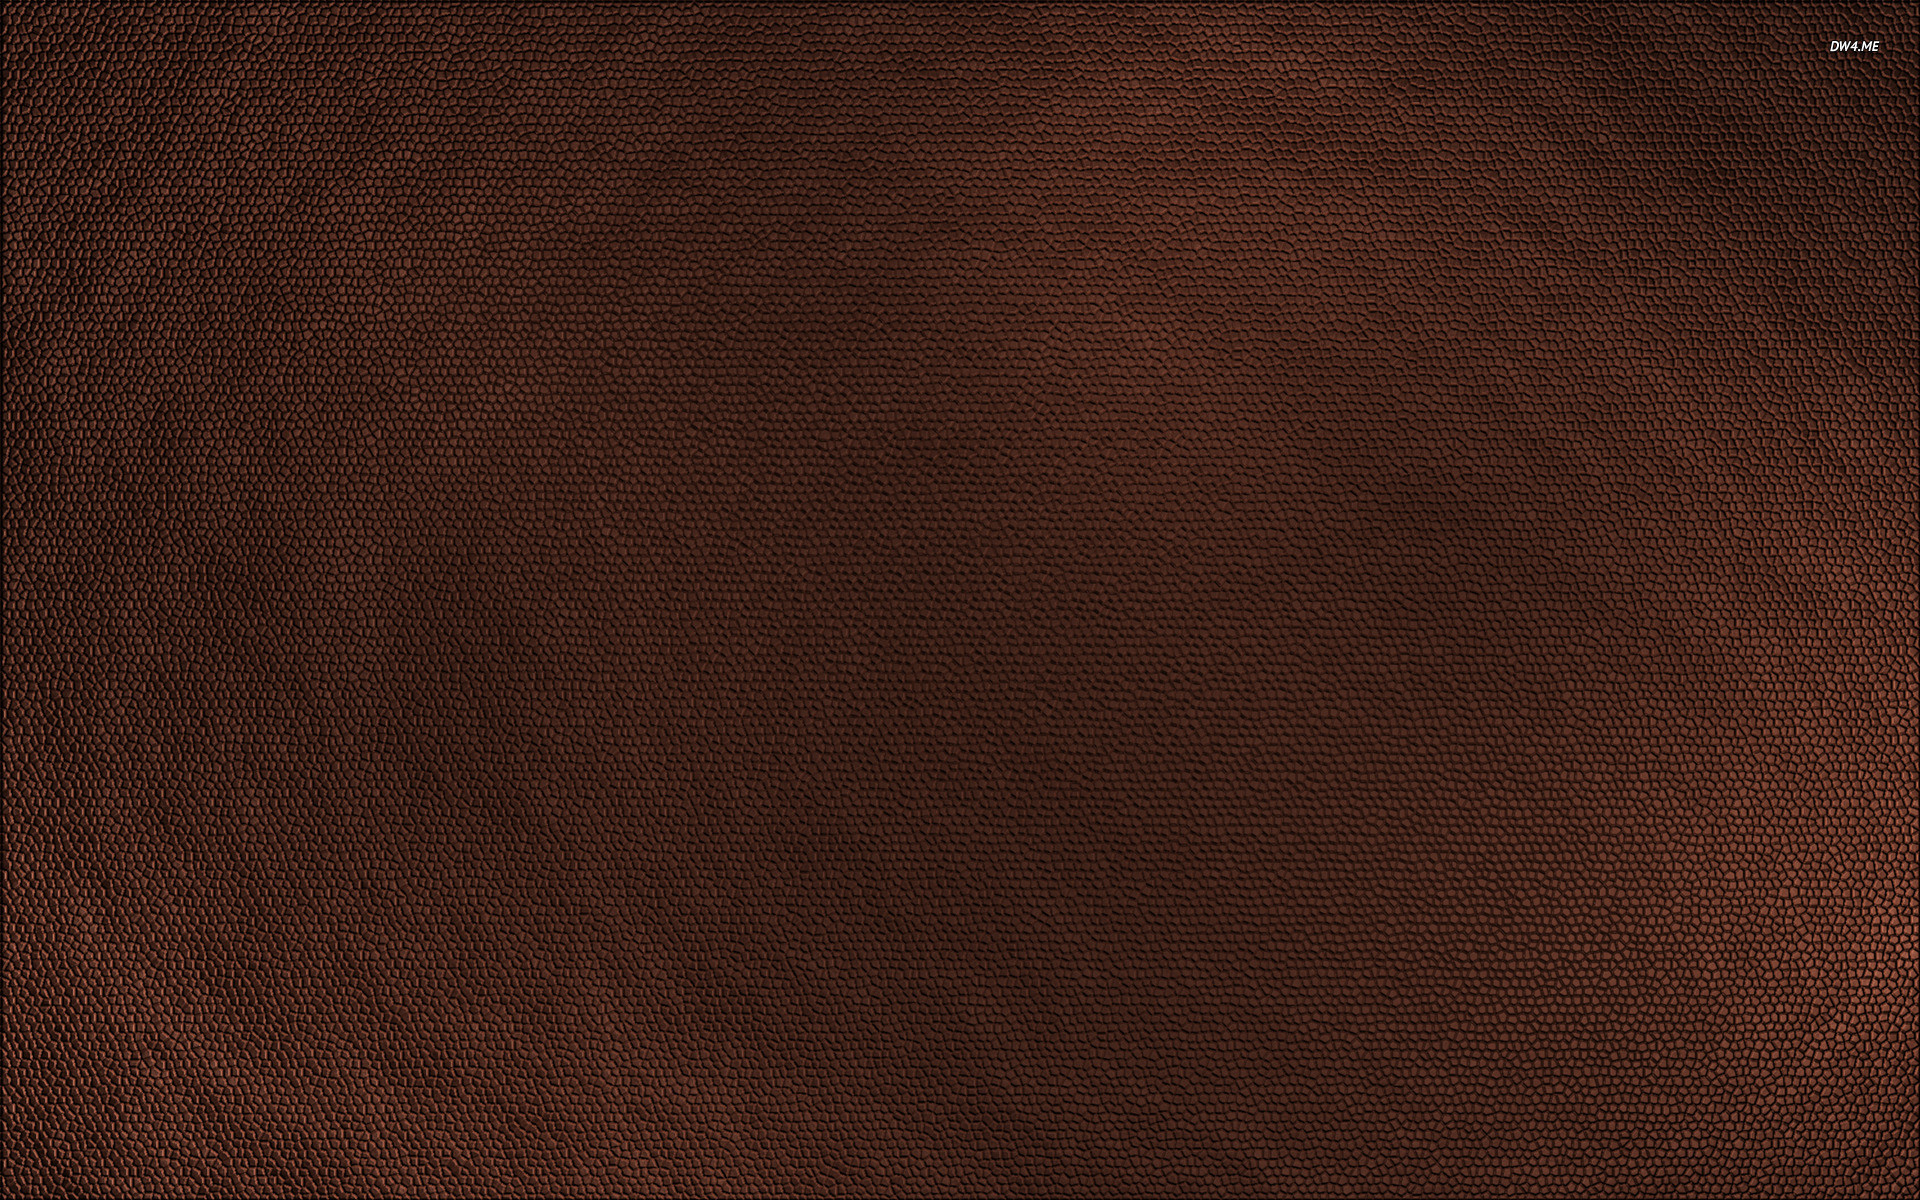 1920x1200 Brown Leather Wallpaper